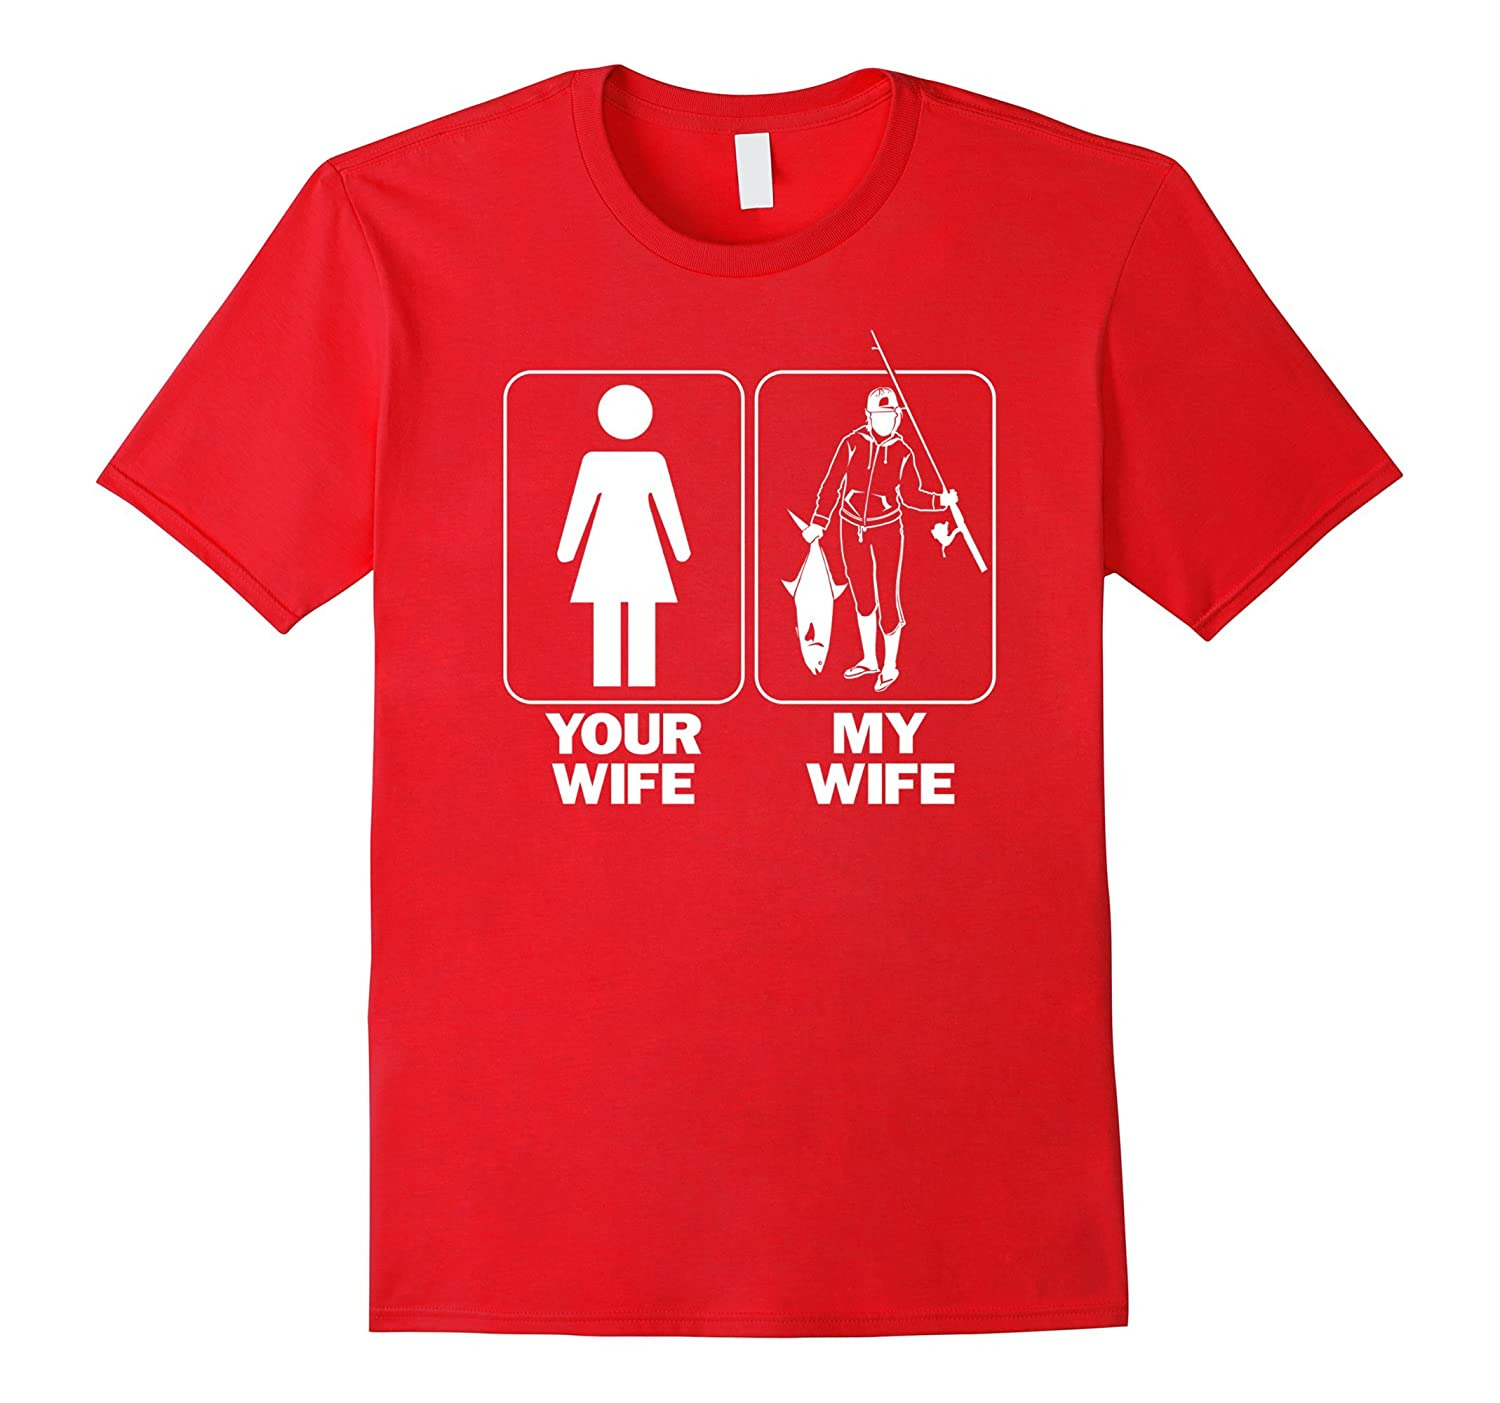 Your Wife My Wife / funny fishing shirt-BN